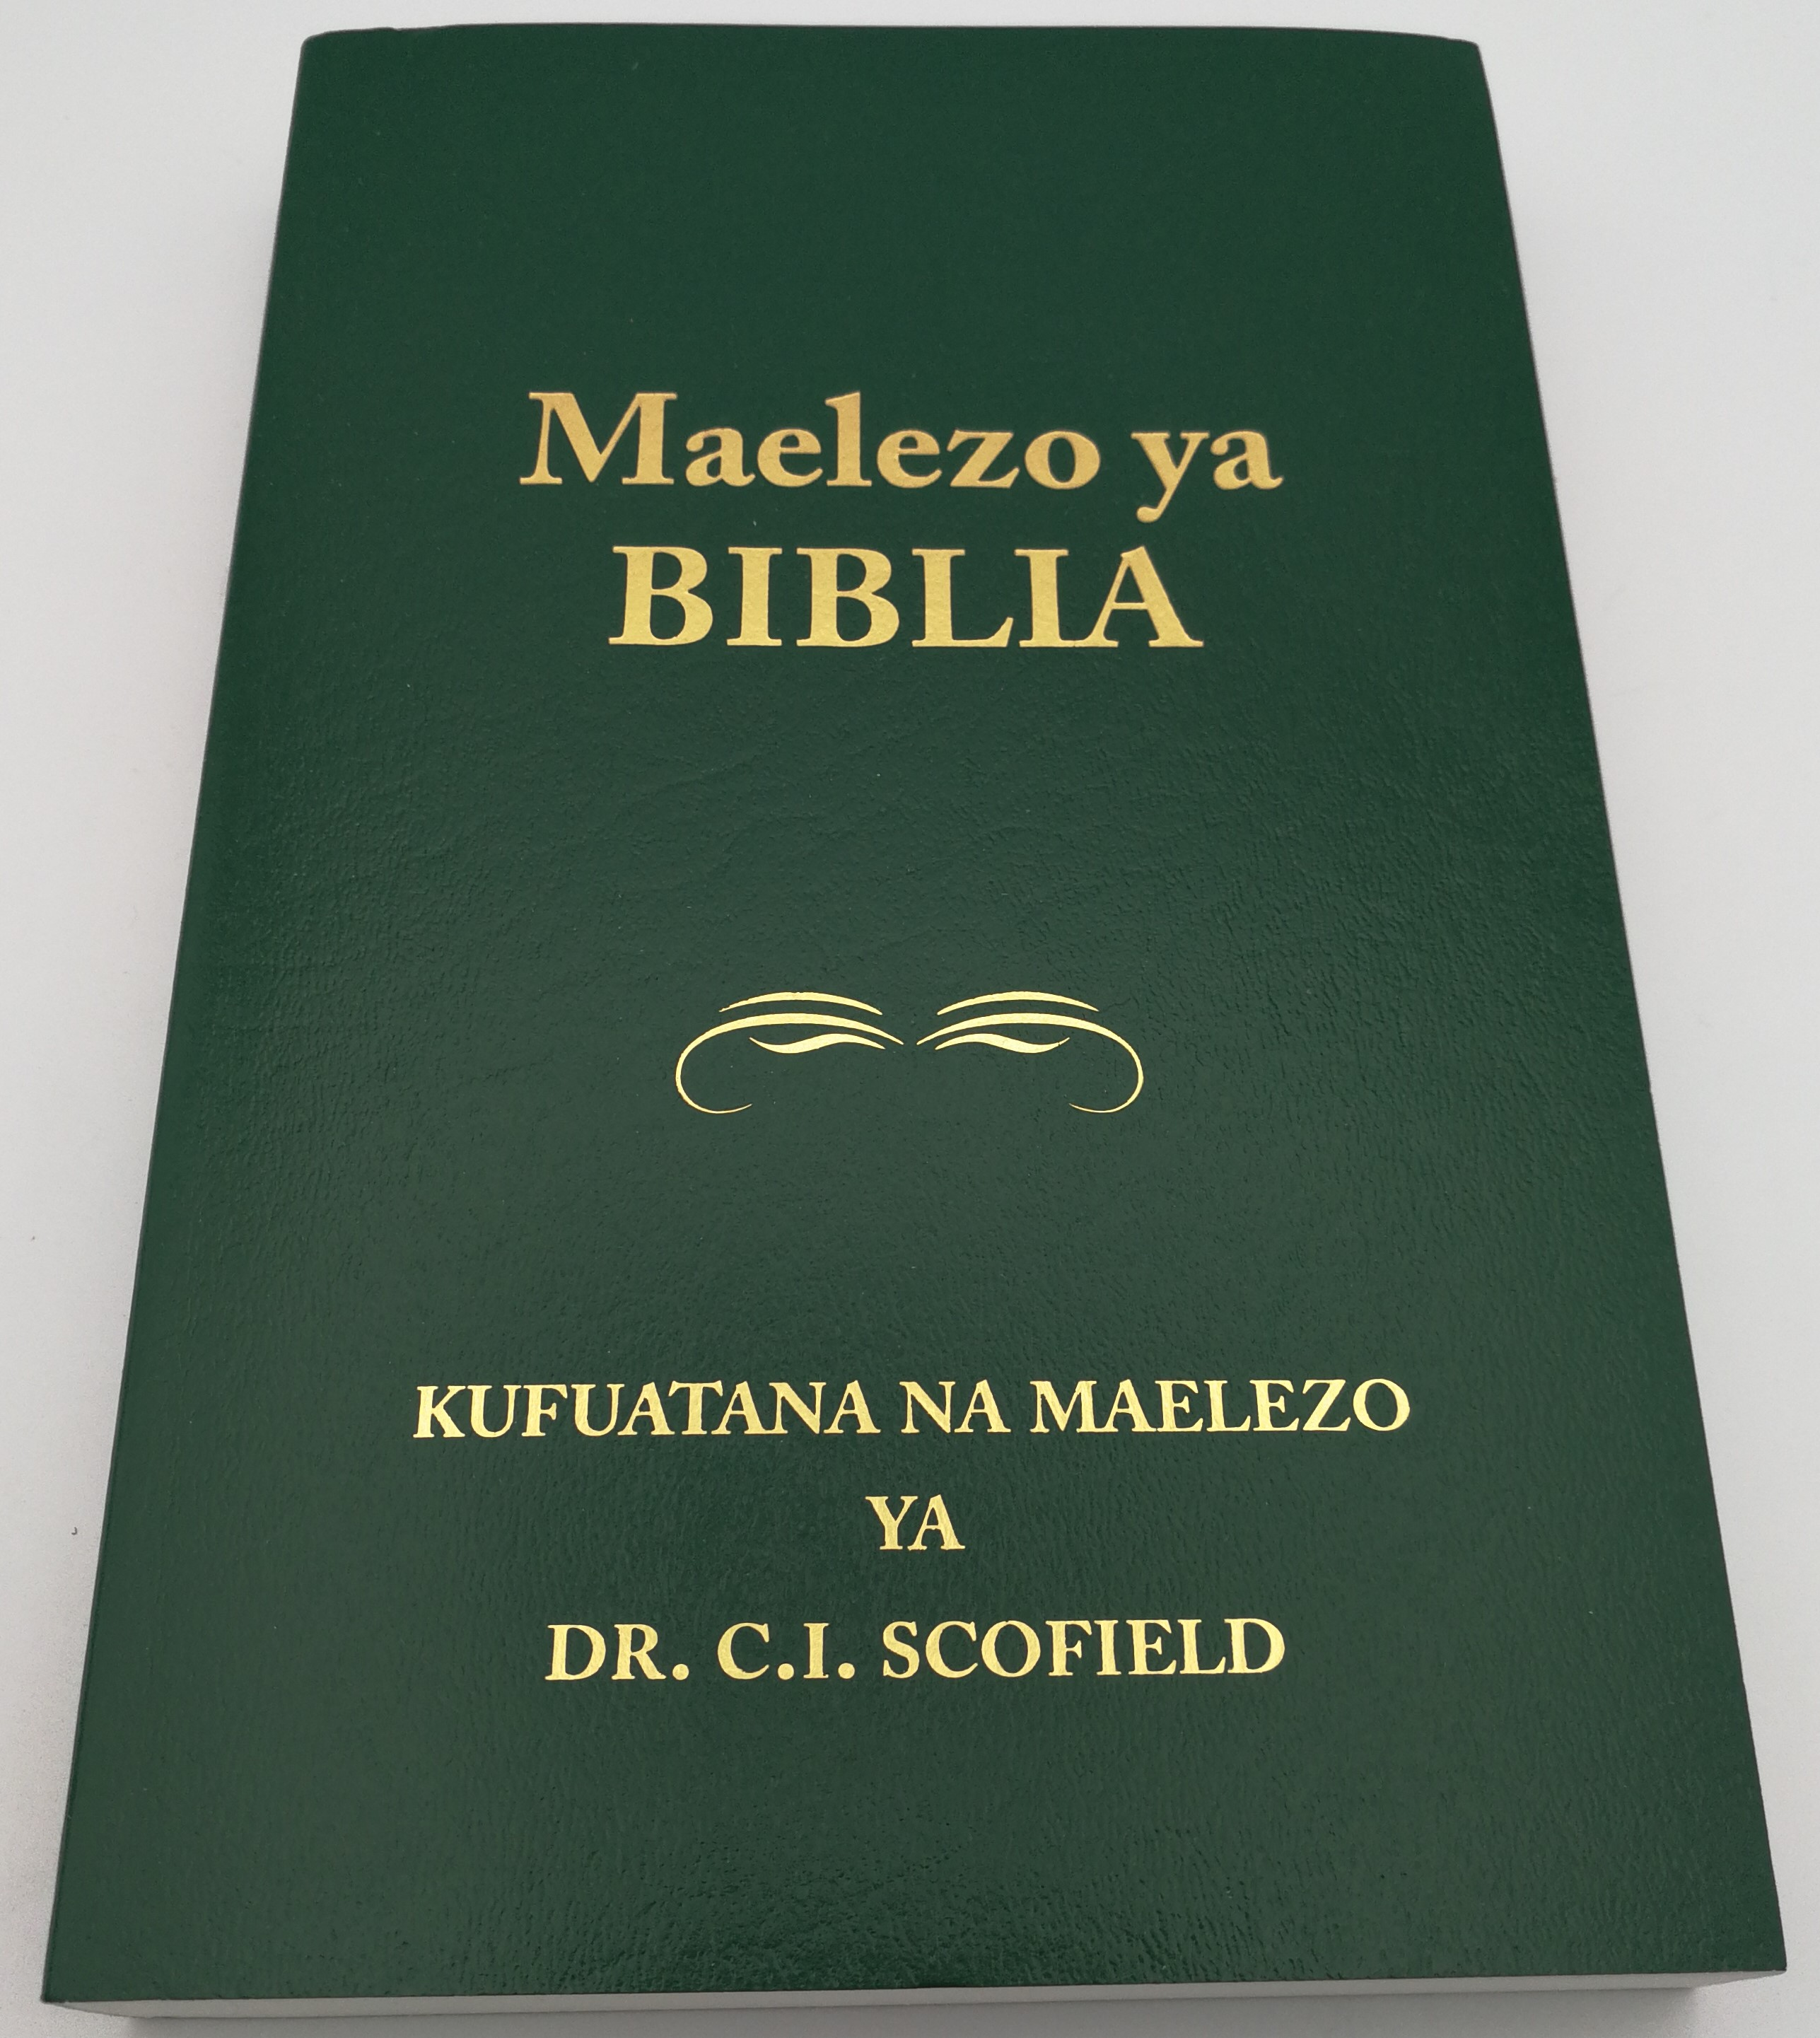 maelezo-ya-biblia-swahili-language-holy-bible-with-scofield-s-notes-1.jpg